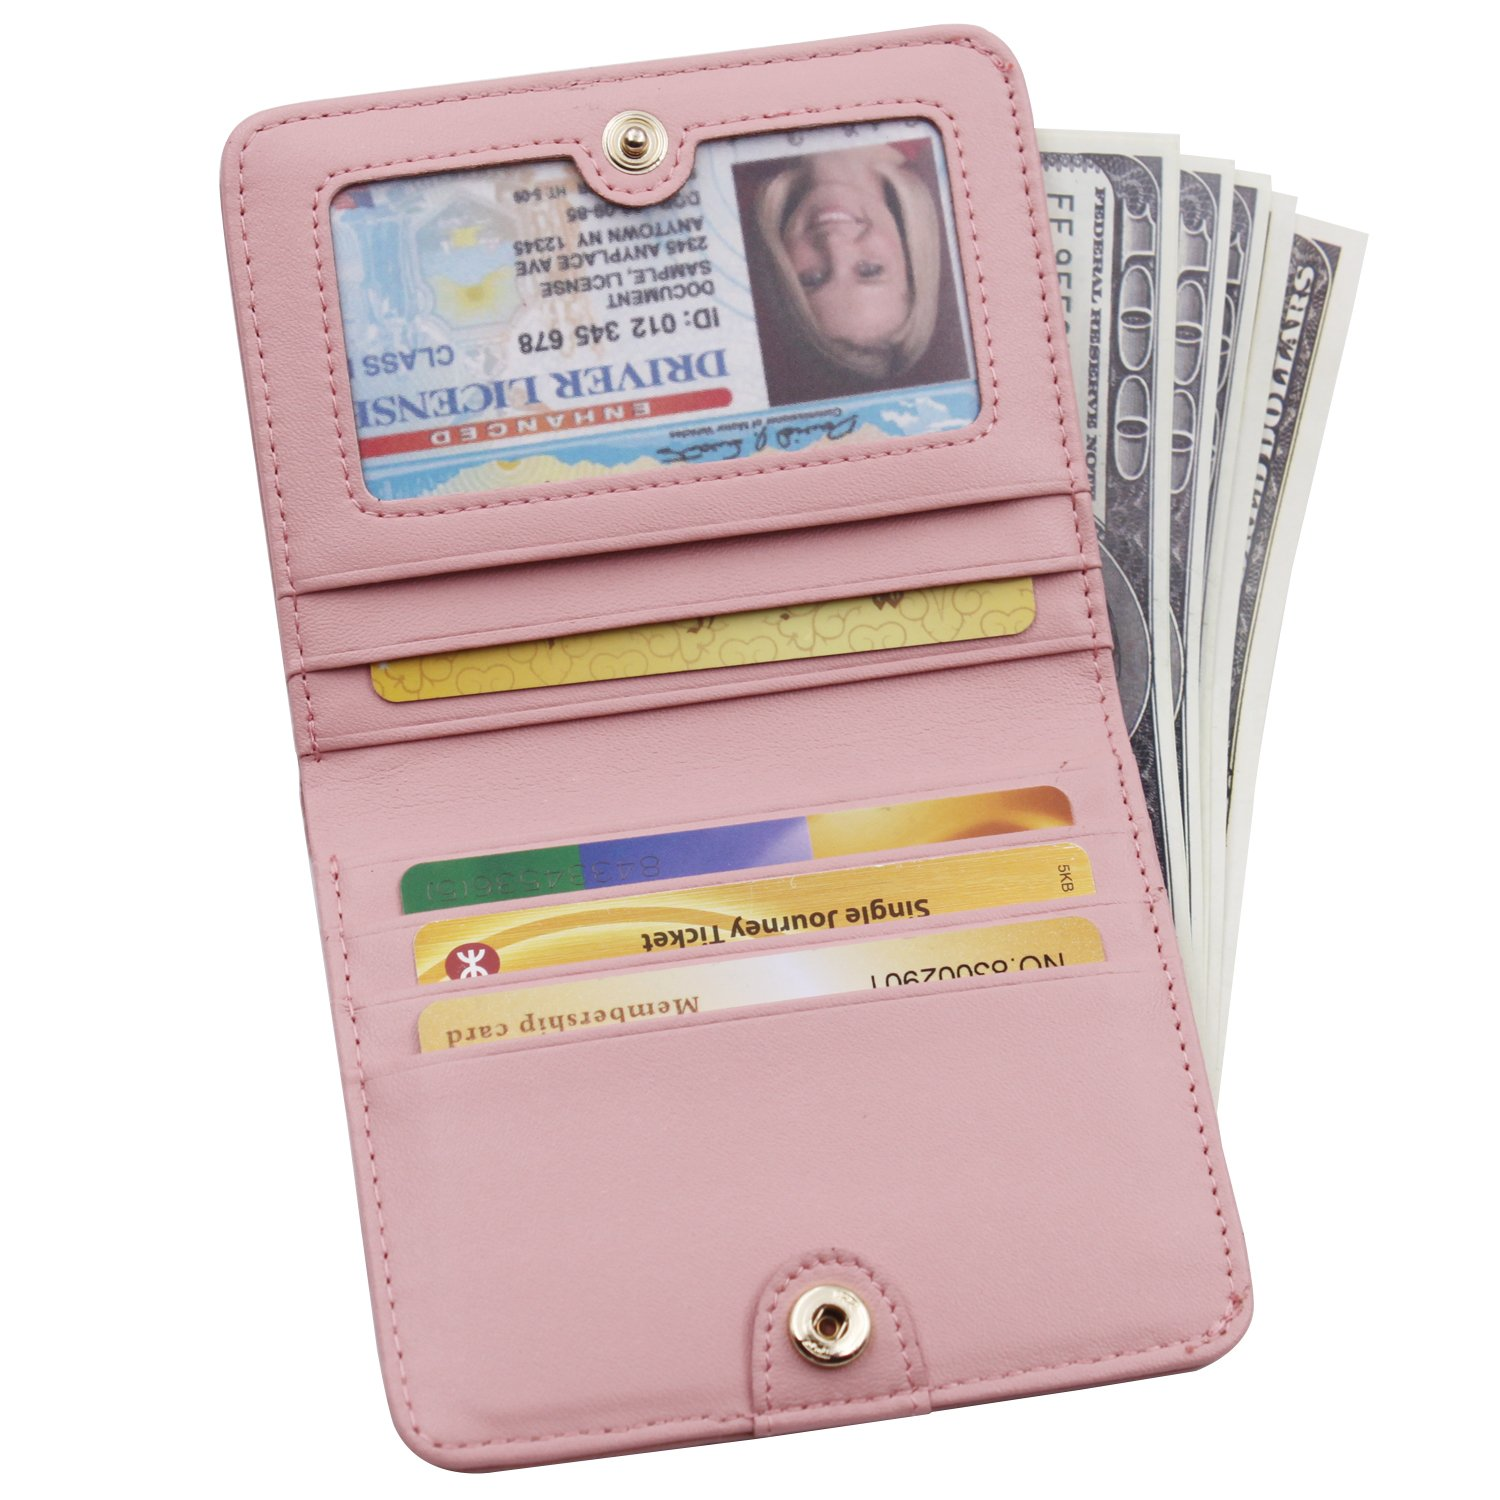 Women's Small Compact Bi-fold Leather Pocket Wallet Credit Card Holder Case with ID Card Window (New Pink) by ARRIZO (Image #6)